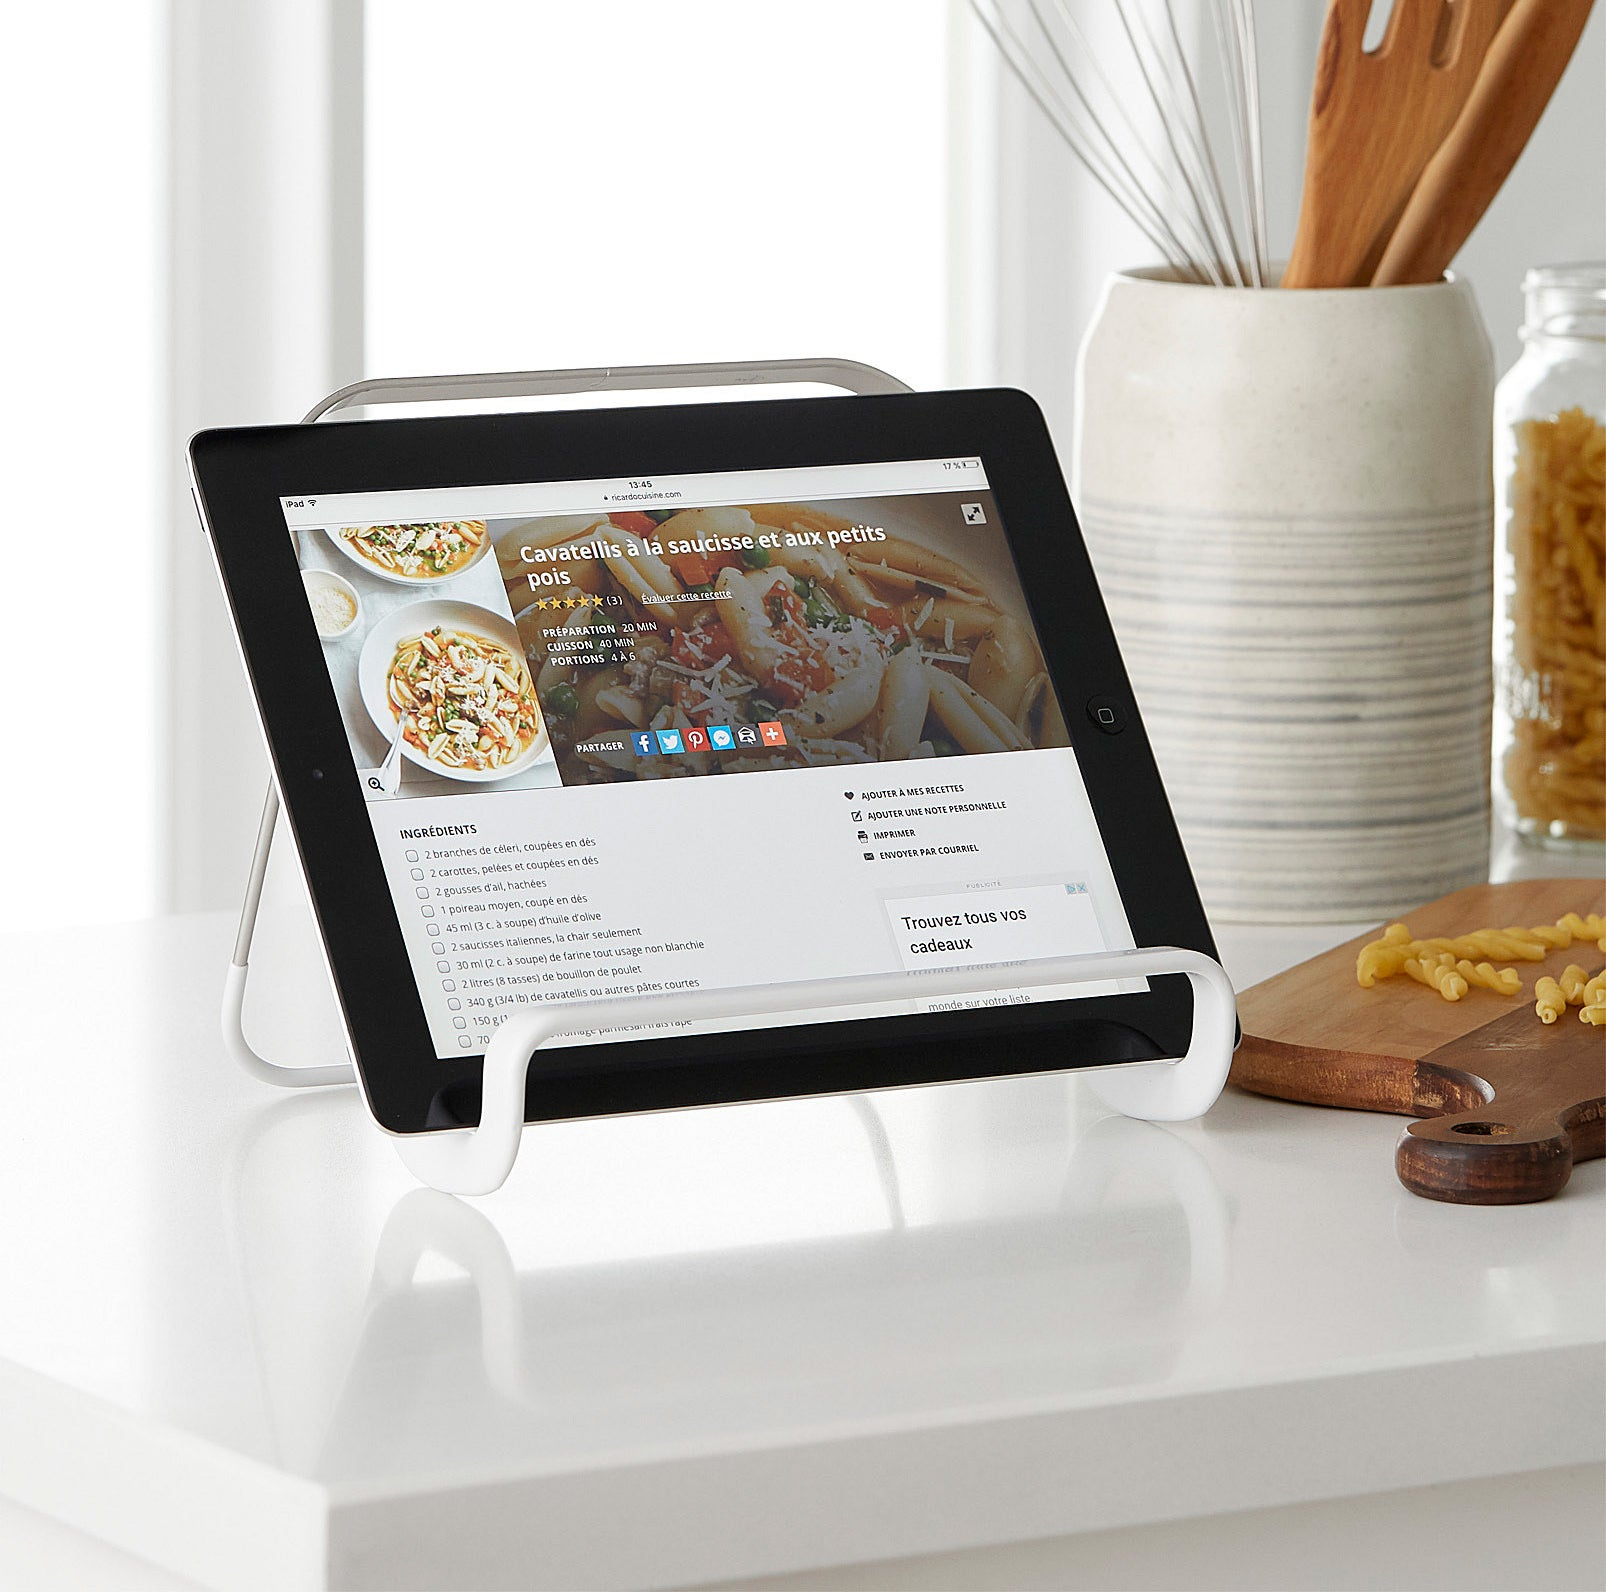 A tablet propped up on a small metal stand